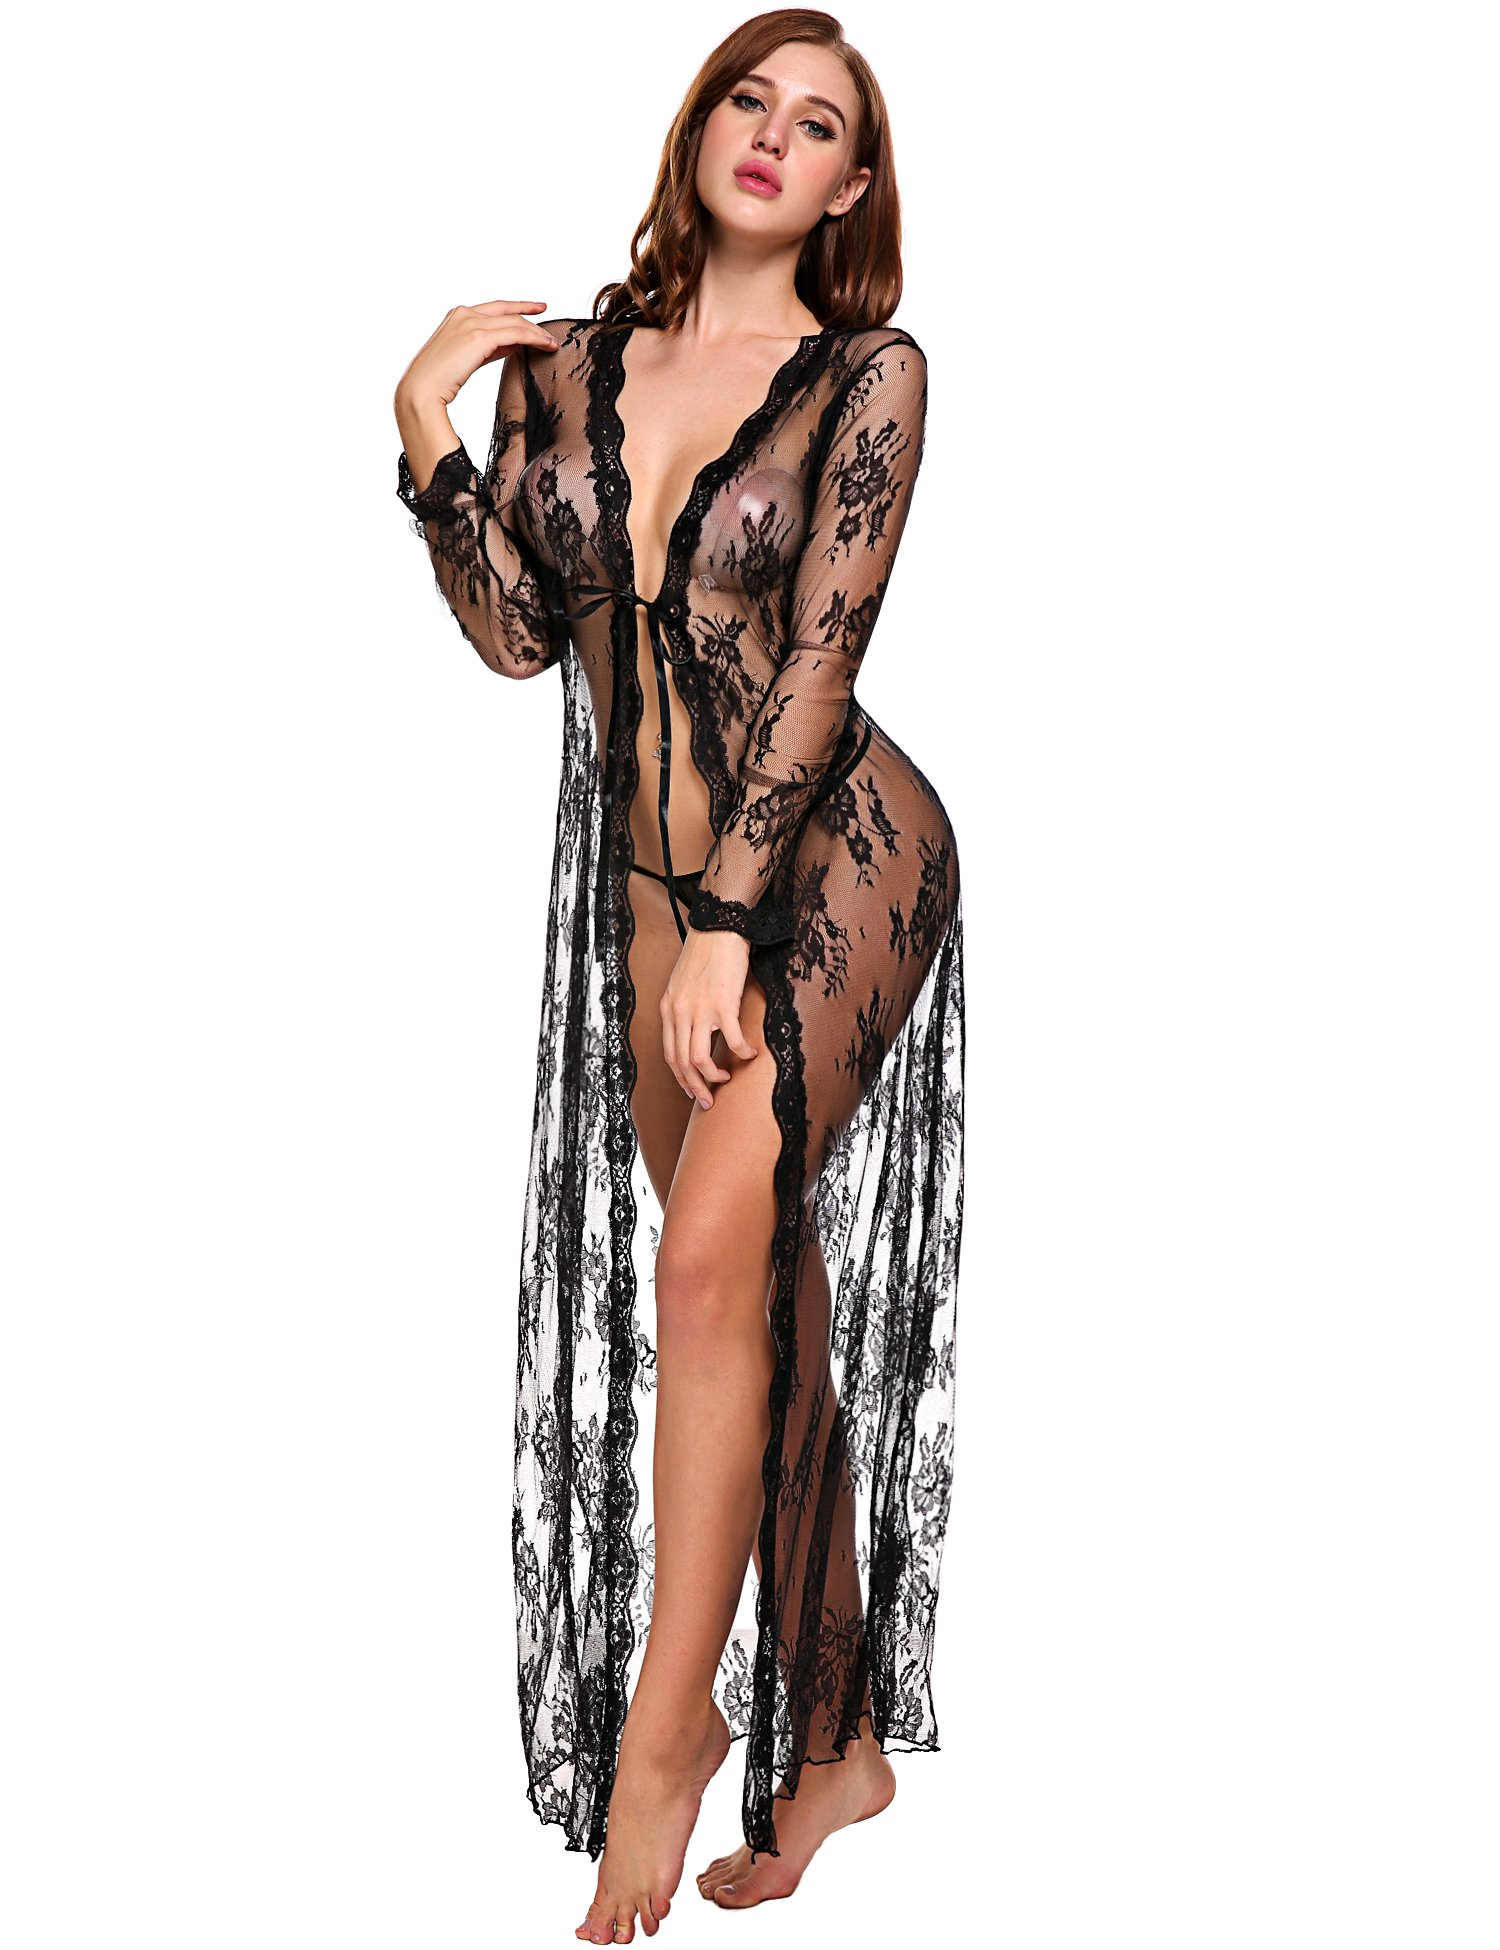 Women Deep V Neck Lingerie Sleepwear Sexy Cosplay Lace Baby Doll Erotic Dress Stewardess Robes,4_black Beach Bikini Cover Up,Large